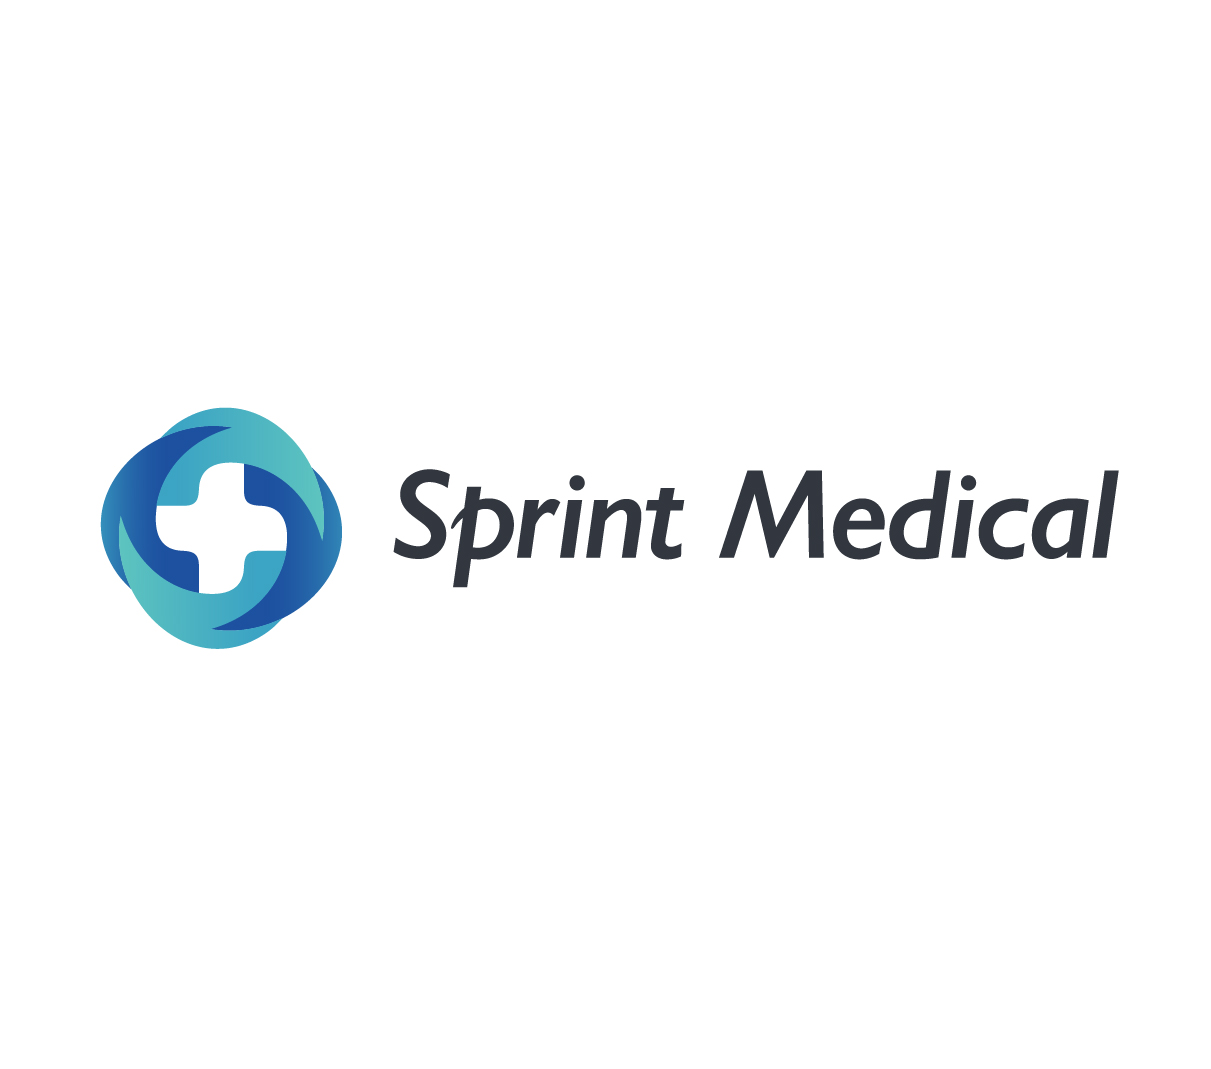 Sprint Medical Logo.jpg